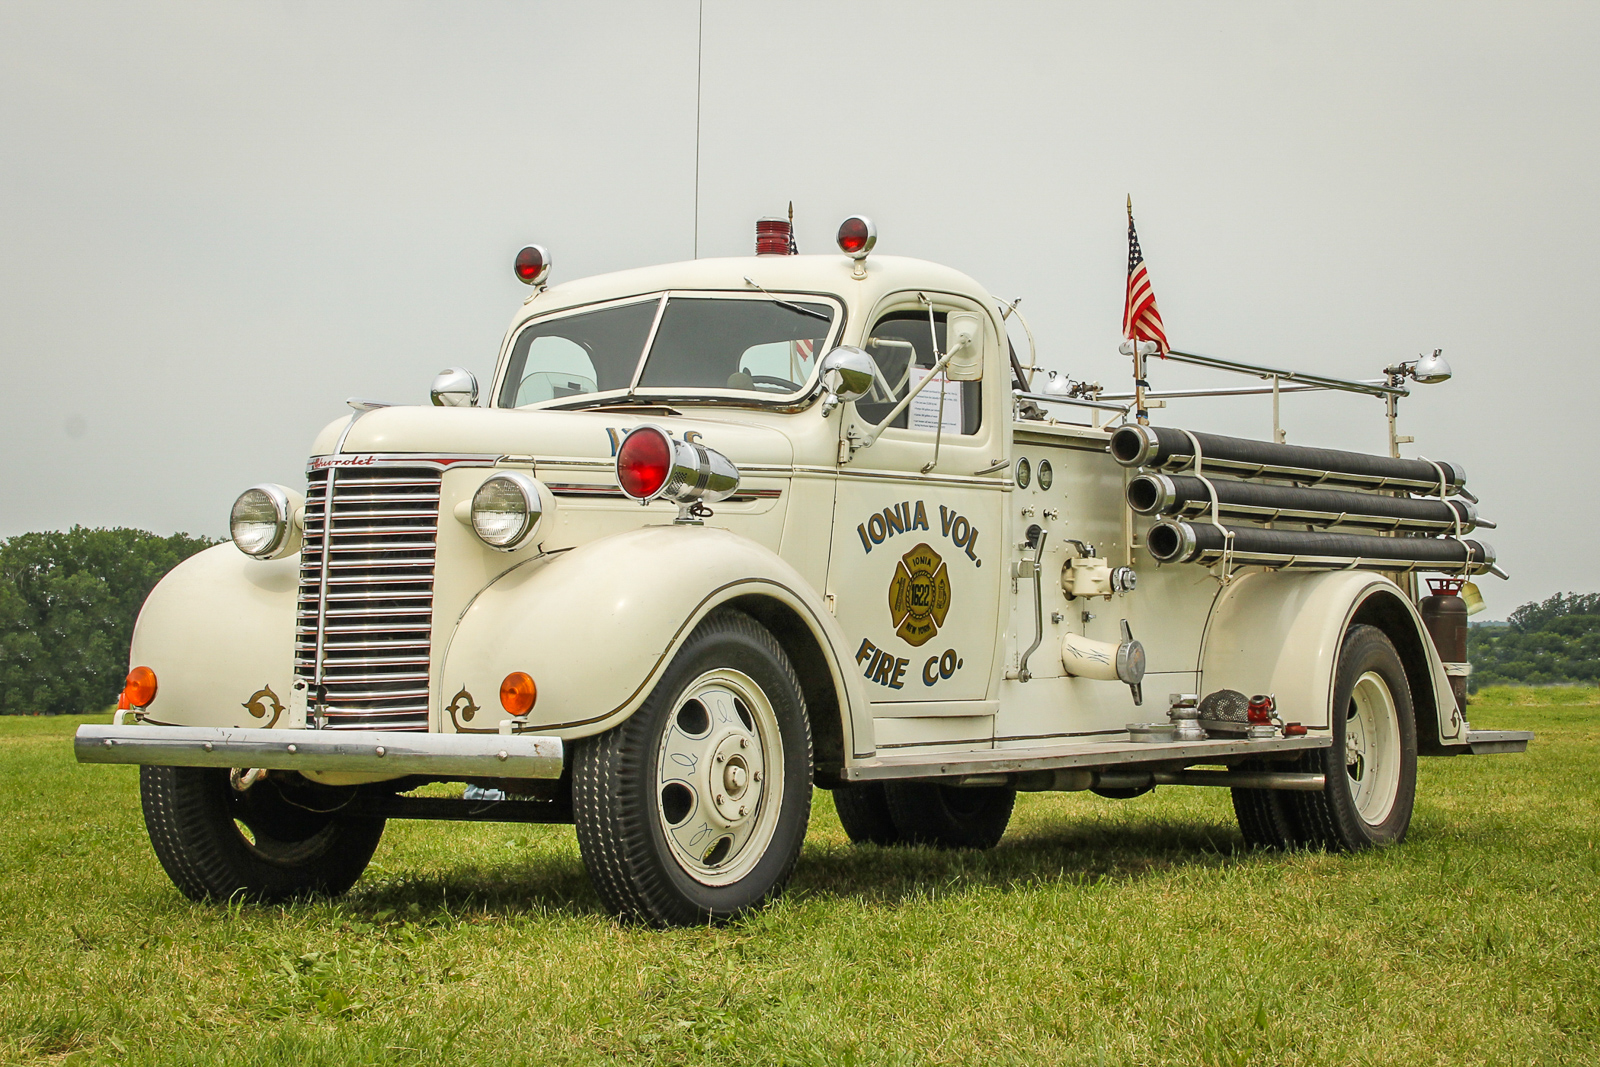 1939 Chevrolet Pumper. (photo by Tom Pawlesh)